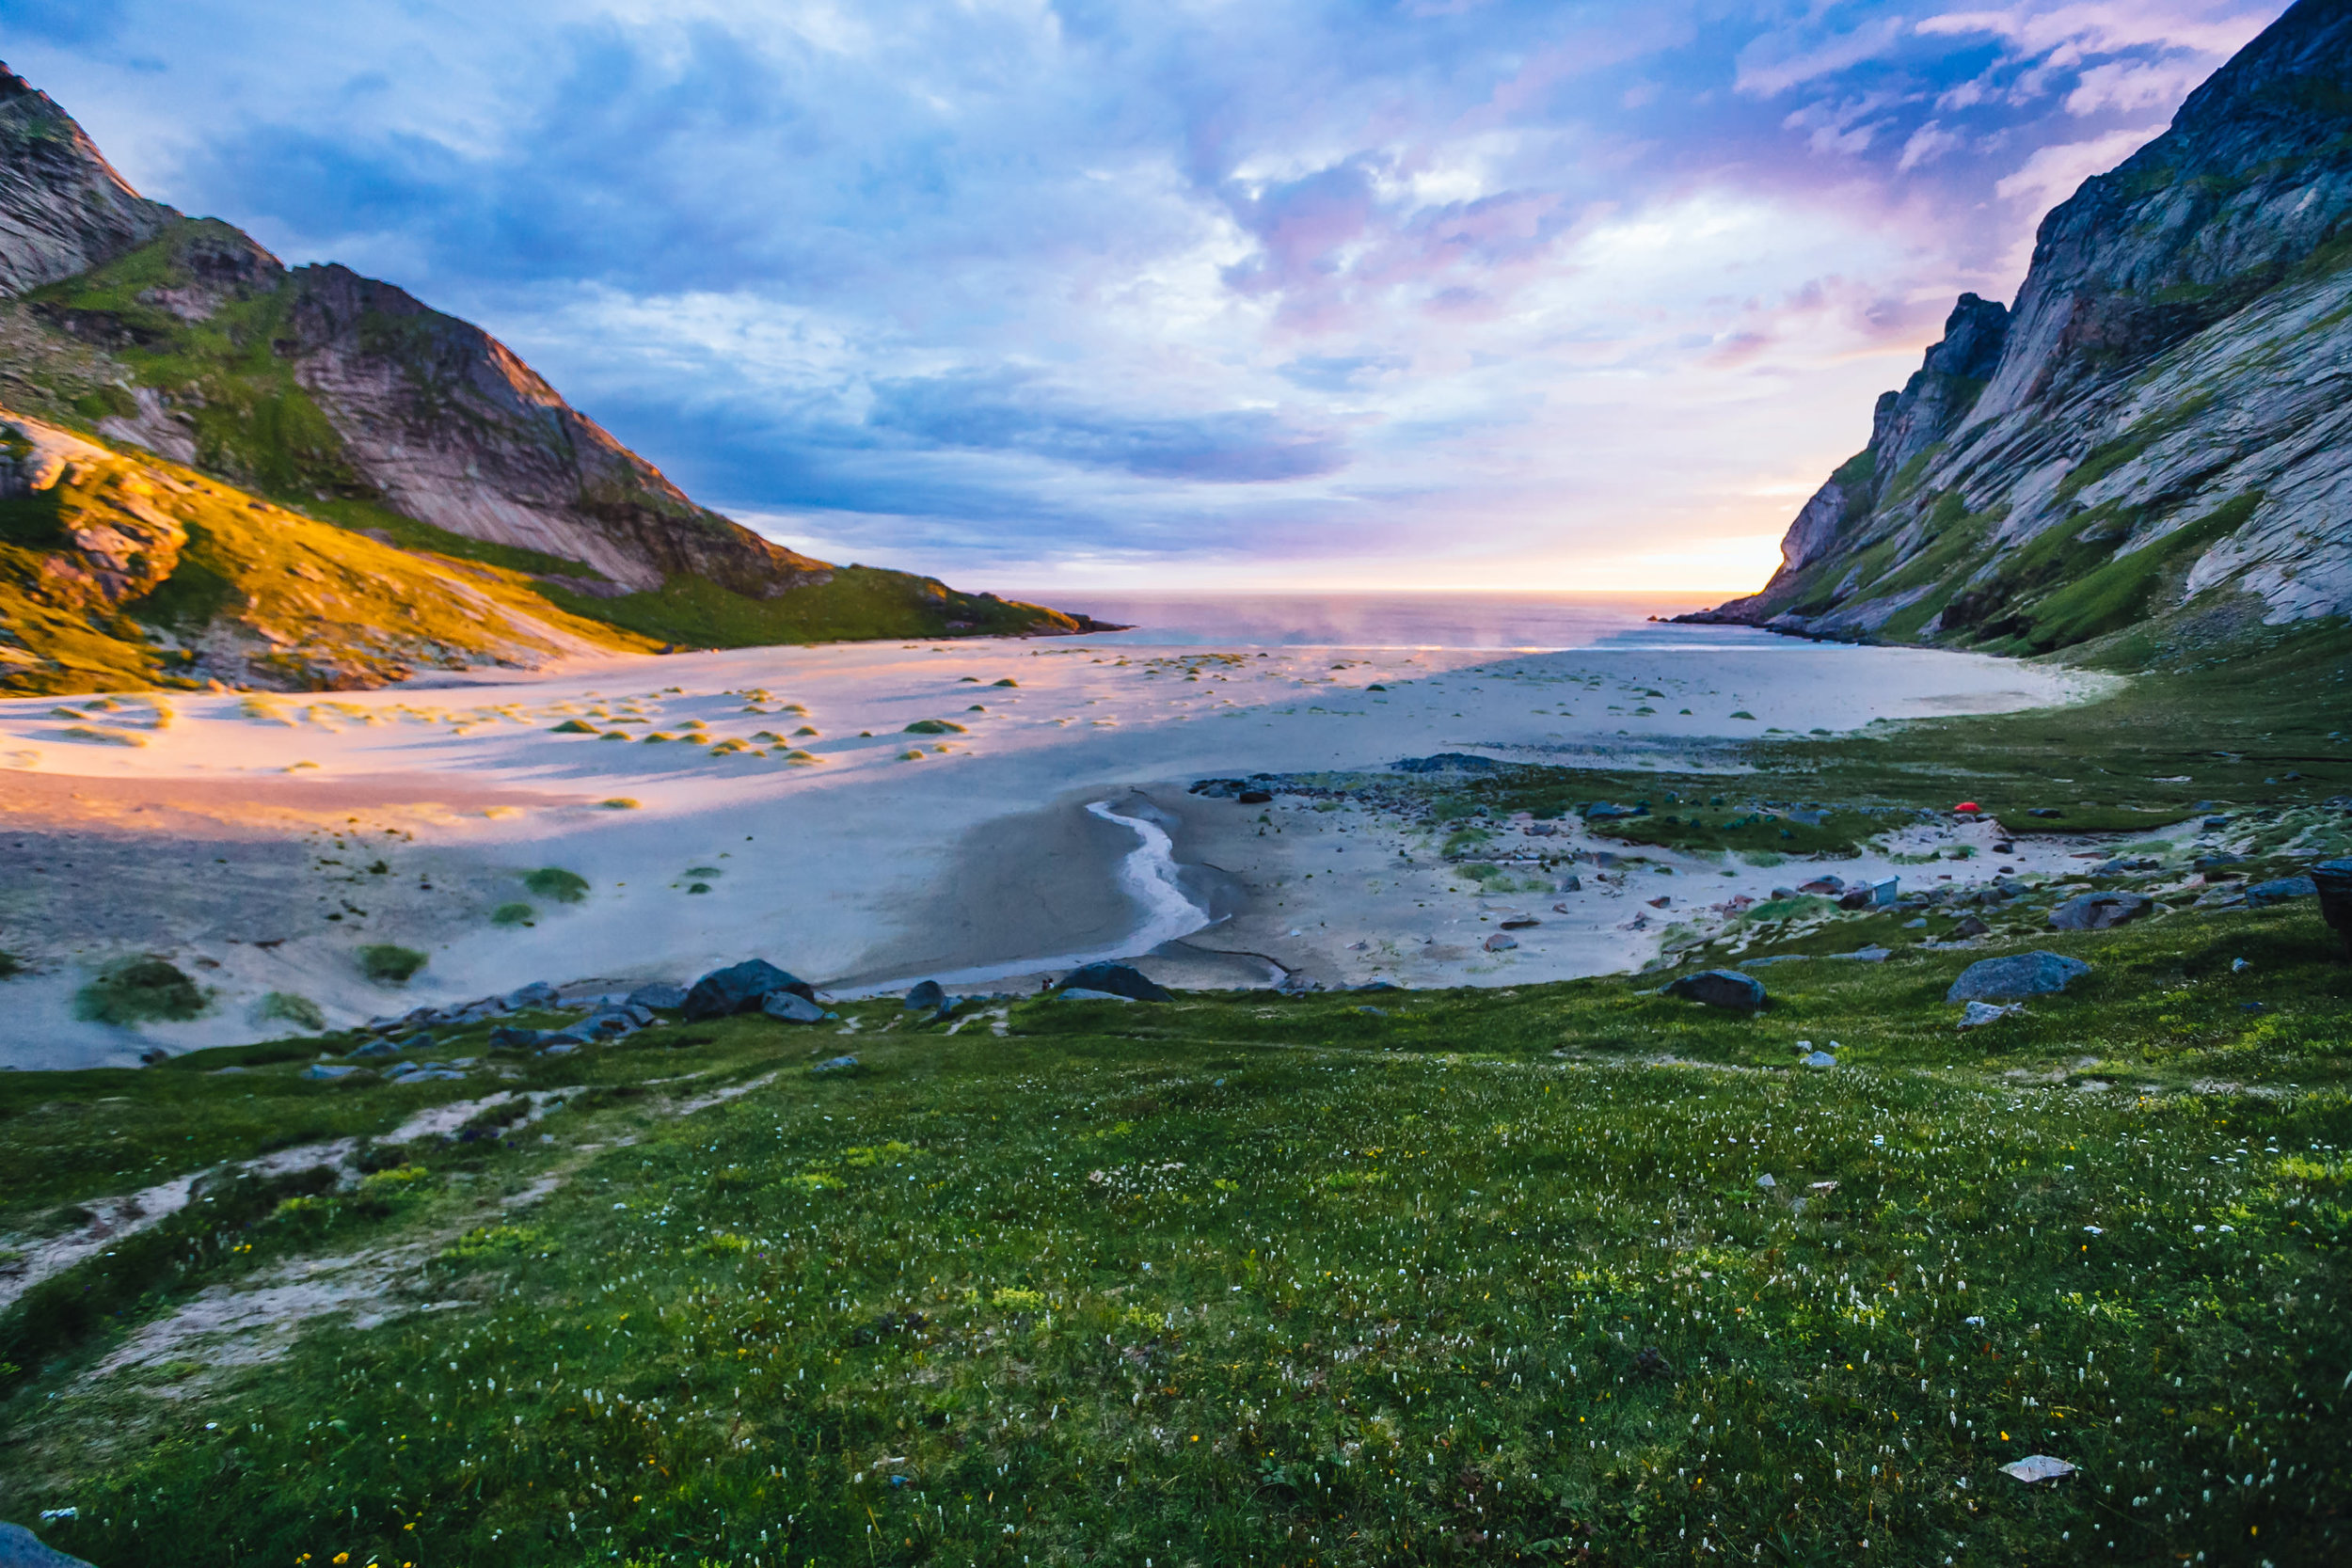 Bunes midnight sun, Lofoten Islands, Norway. 2013